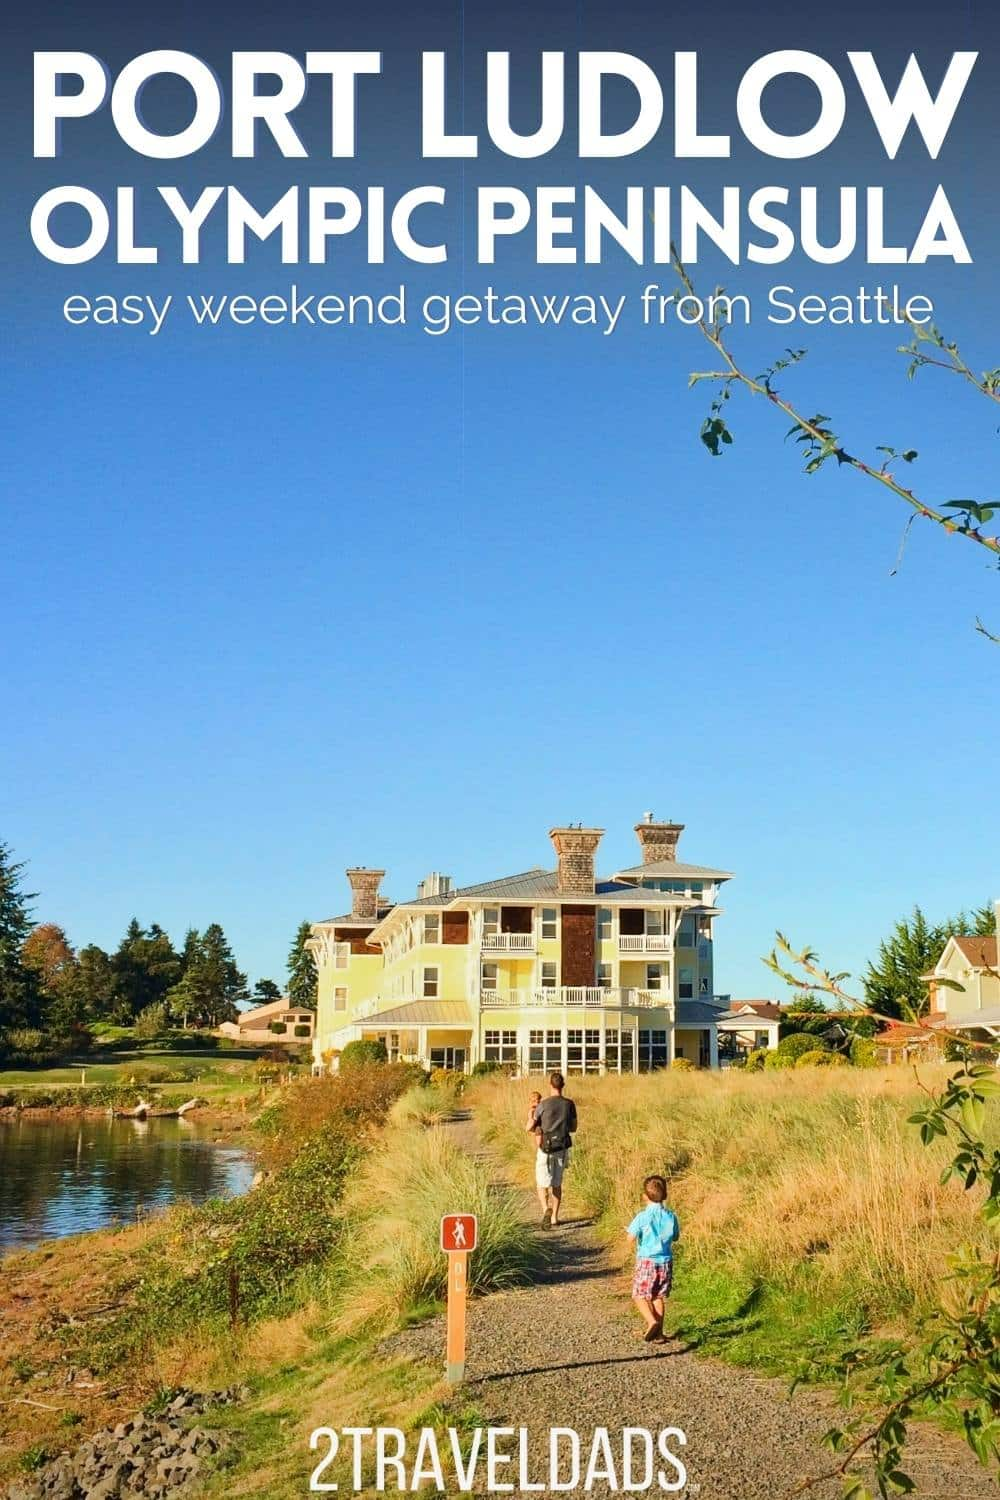 Port Ludlow on the Olympic Peninsula is a great, easy weekend getaway from Seattle or Tacoma. Make it a road trip stop or spend a few nights relaxing, eating amazing food and exploring the outdoors.